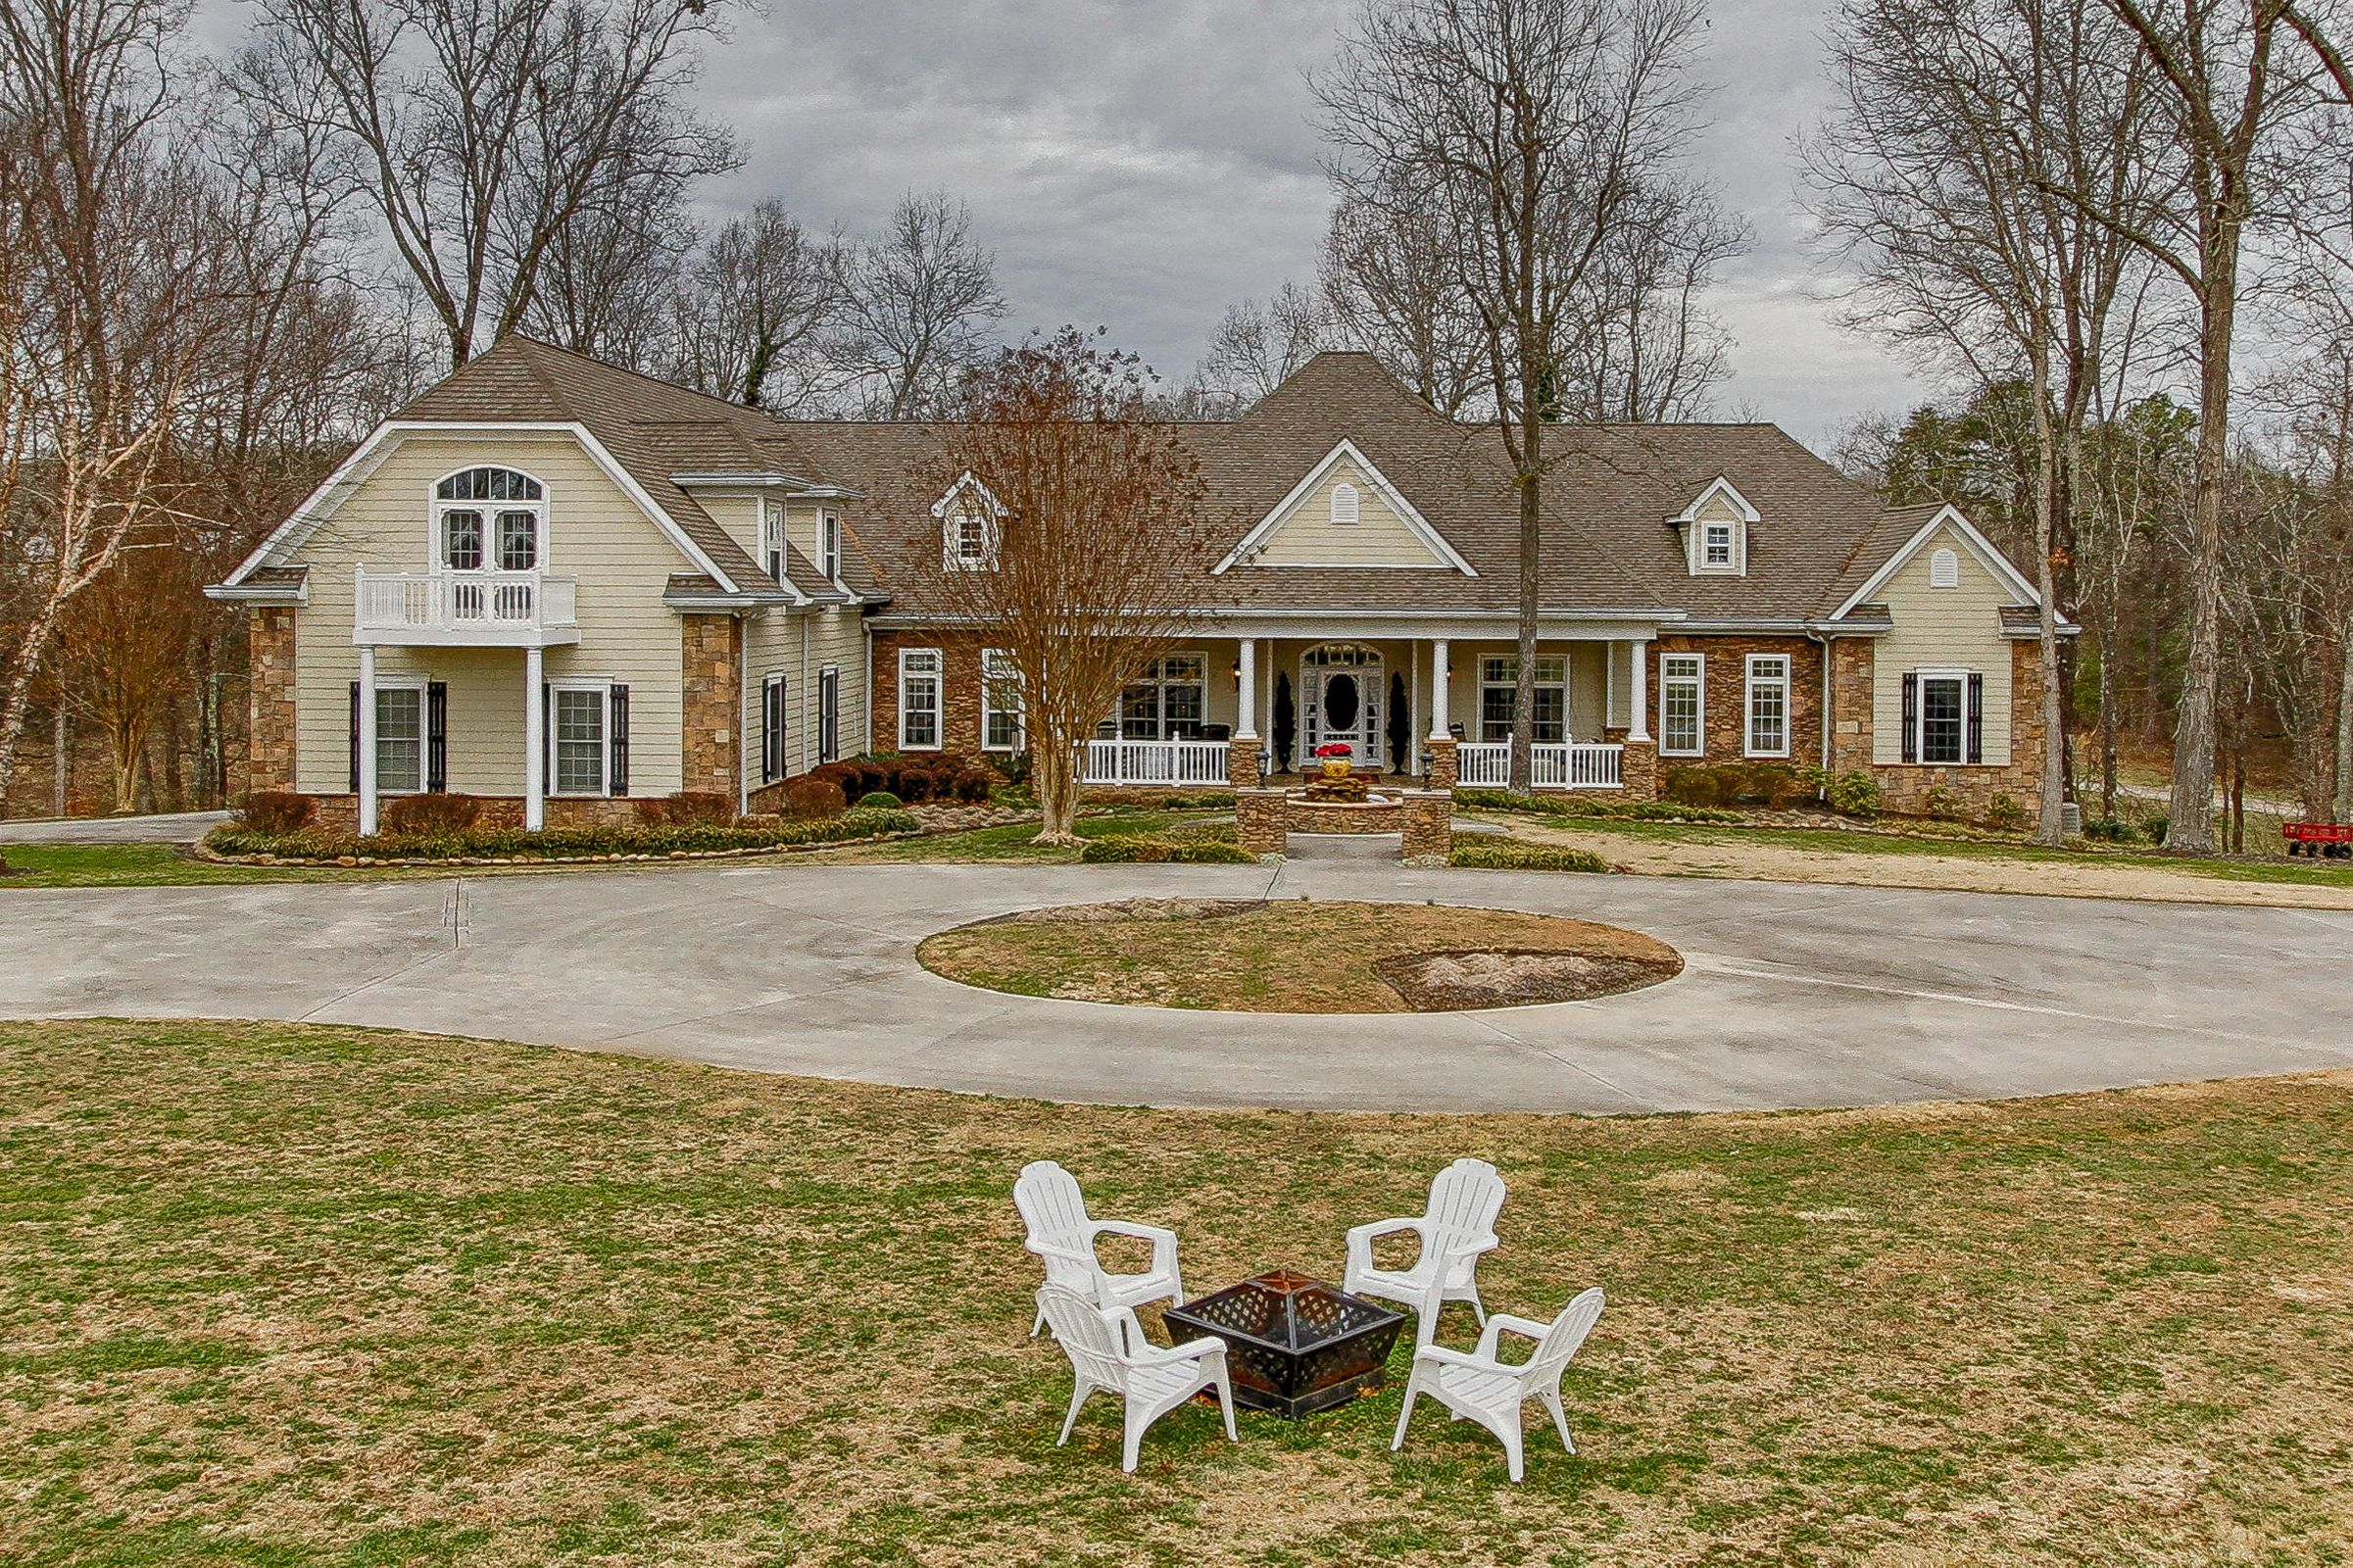 Fire Pit and Circular Driveway